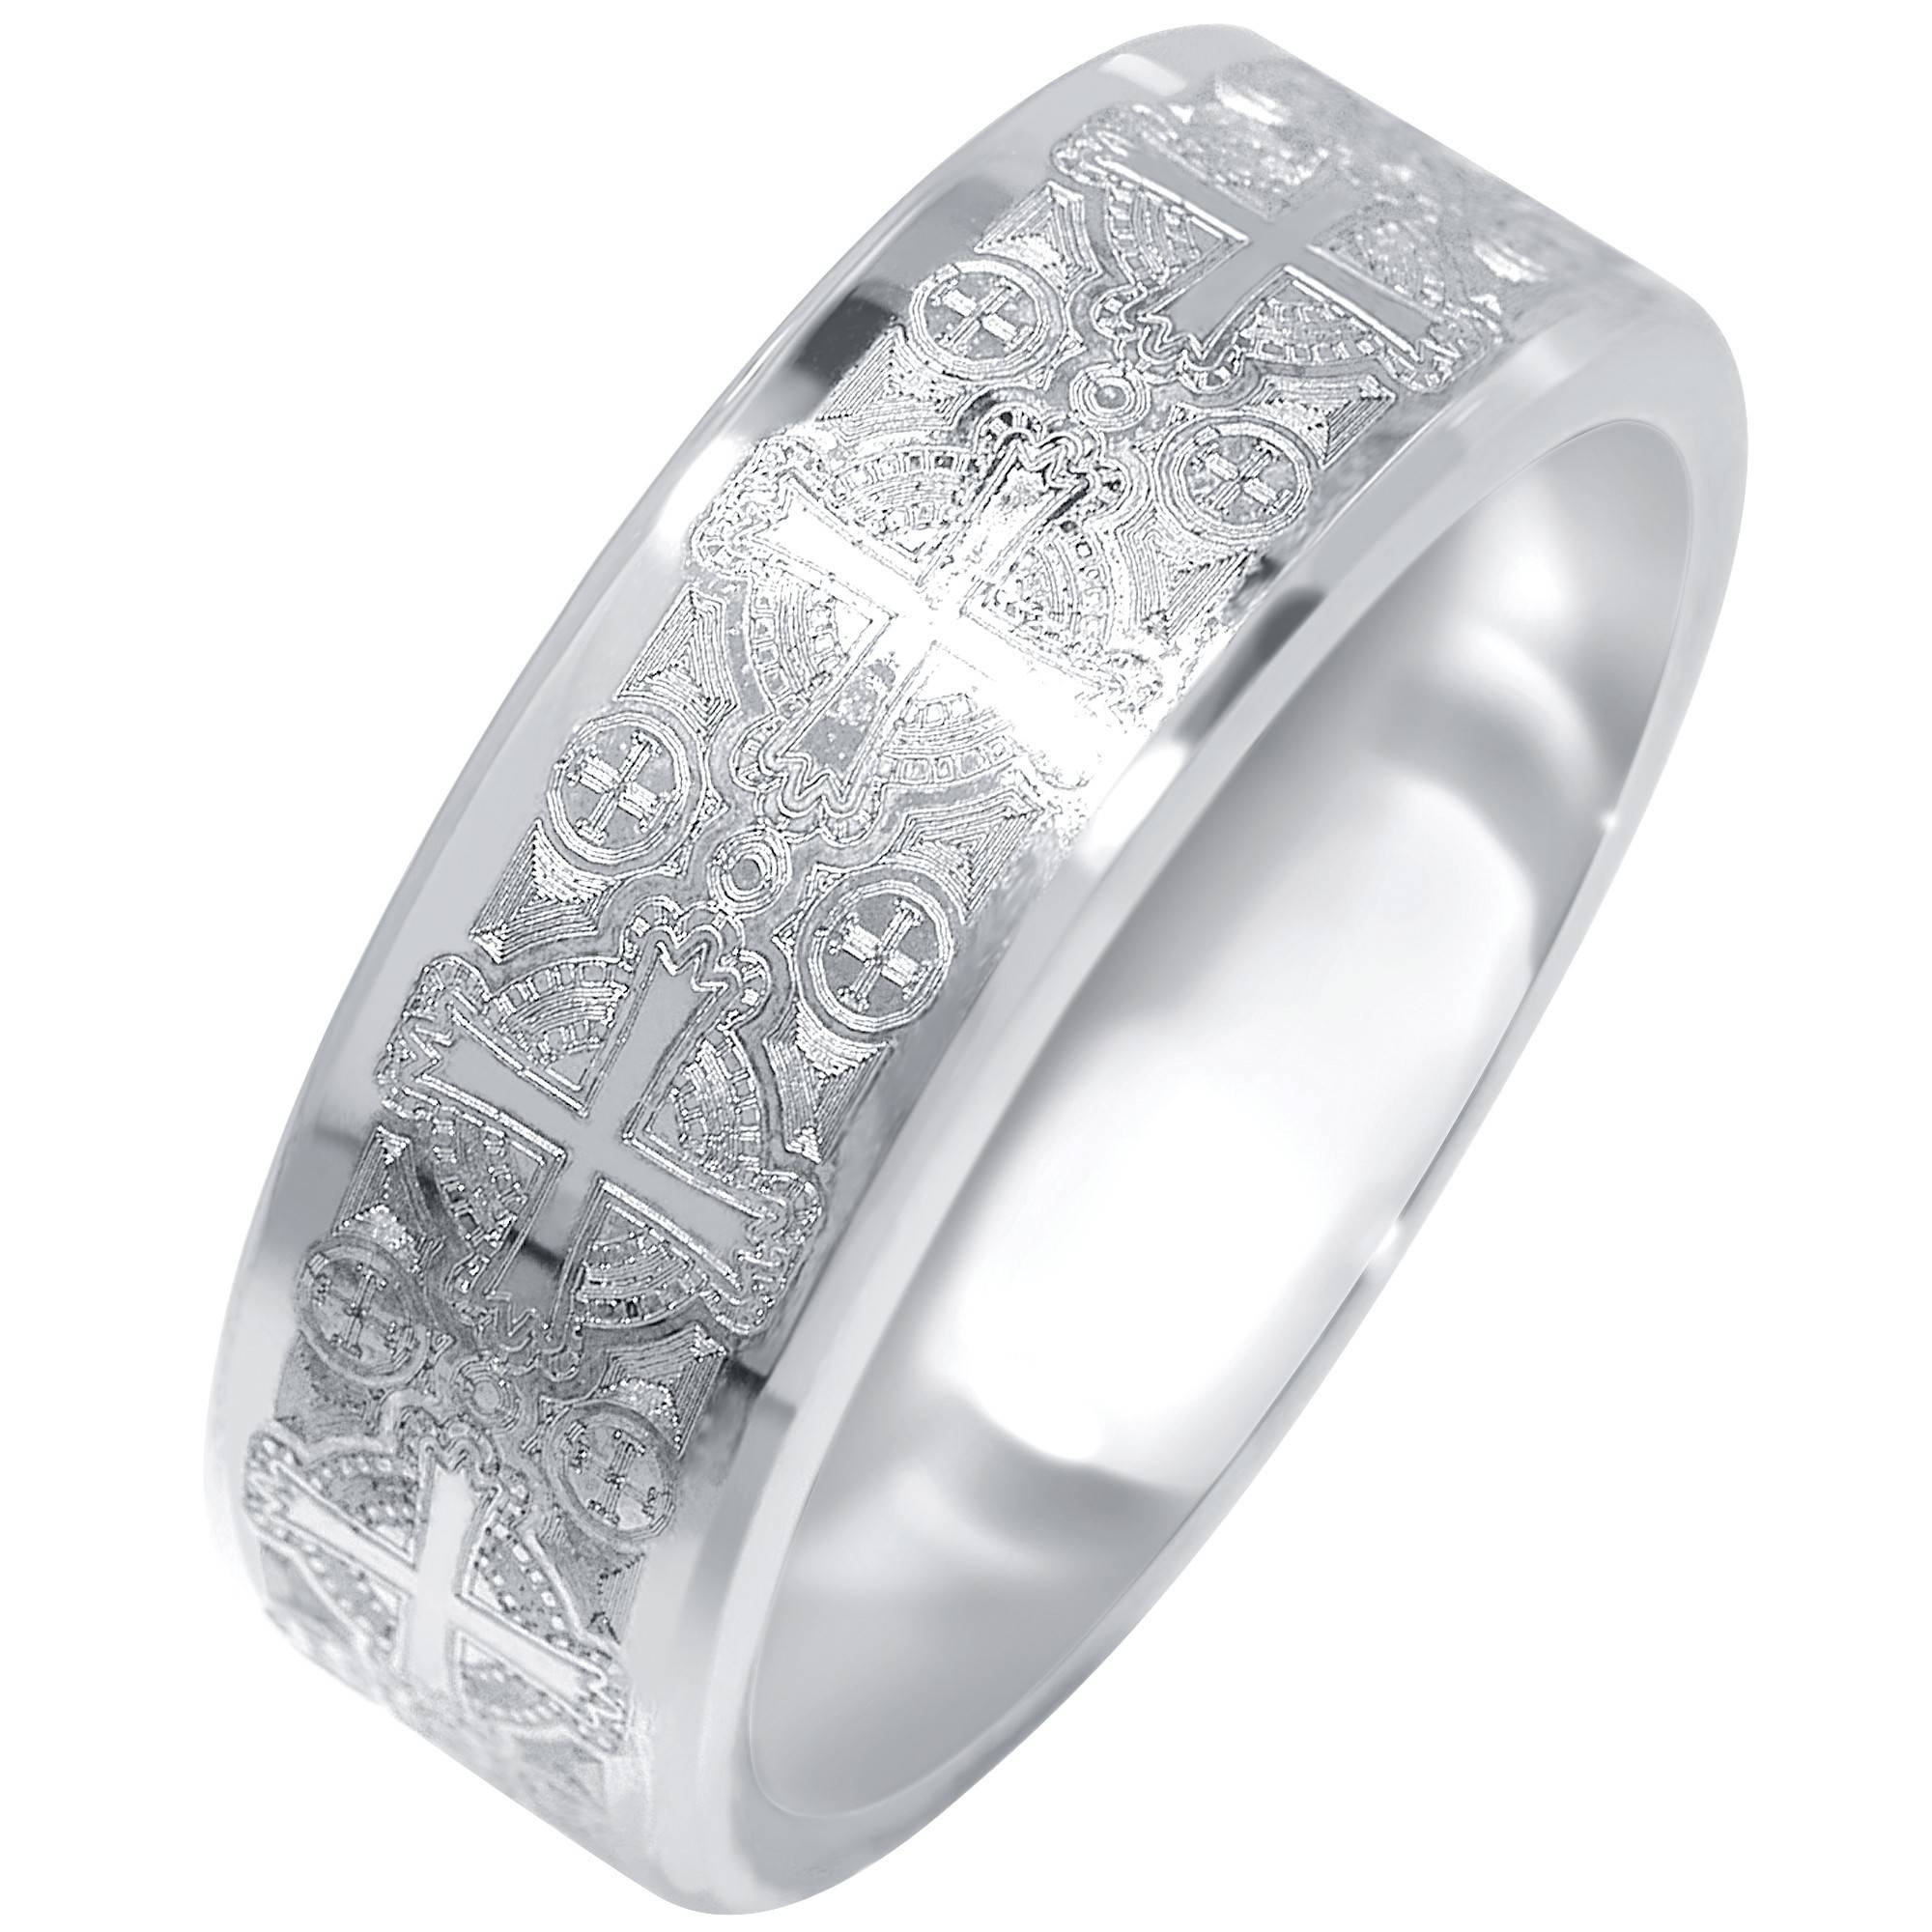 Mens Cross Design Wedding Band In Tungsten (8Mm) Pertaining To Mens Wedding Bands With Cross (View 5 of 15)